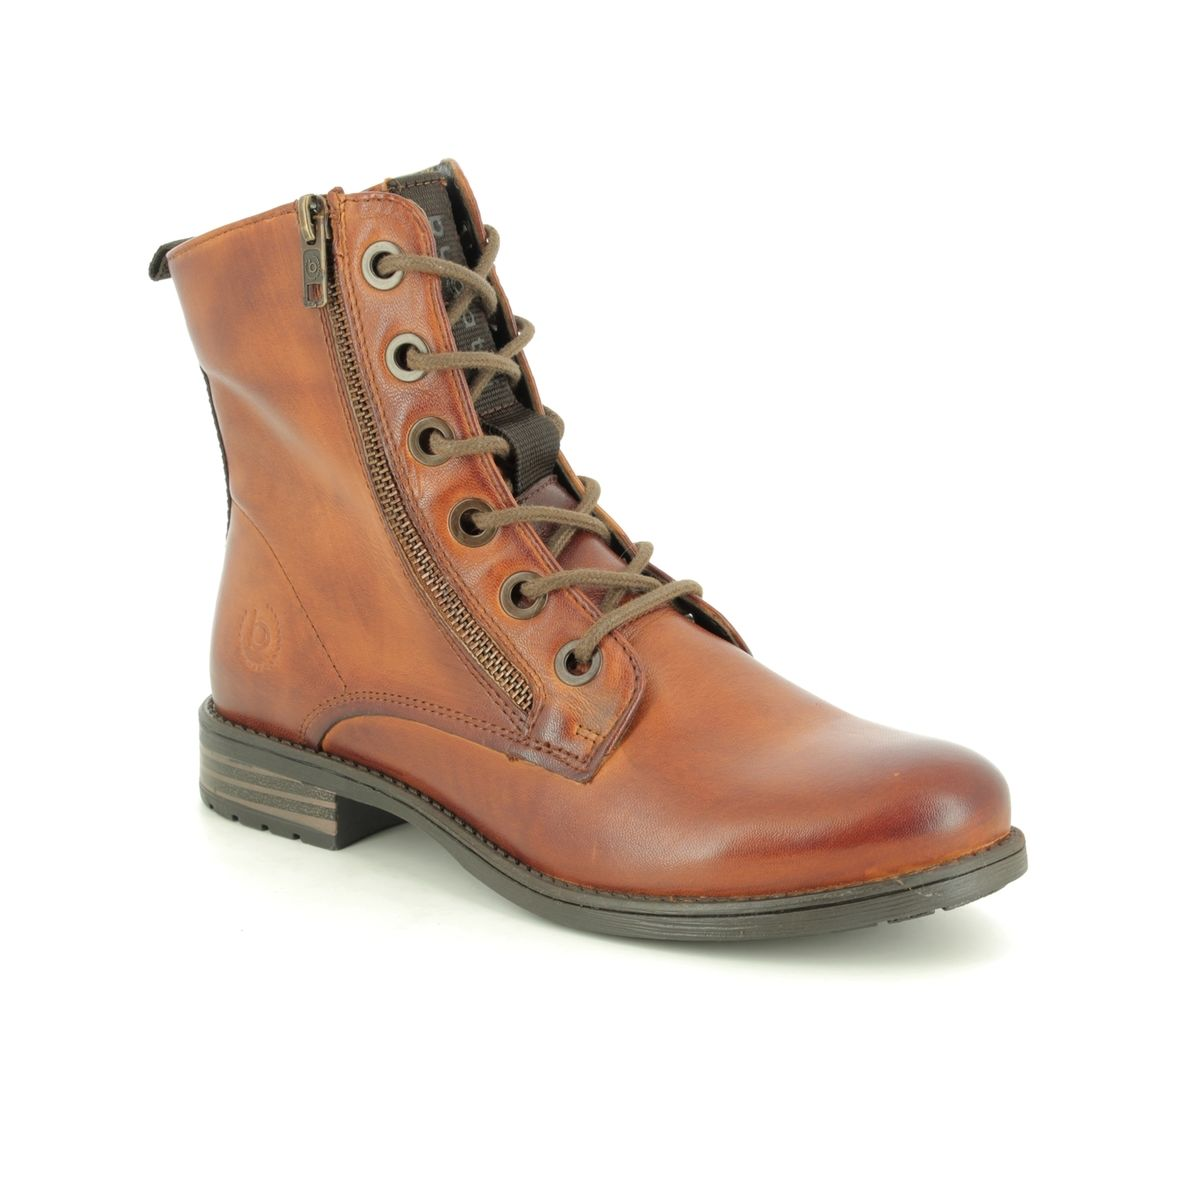 new arrival delicate colors shop best sellers Bugatti Ronja 4115693A-6300 Tan Leather ankle boots